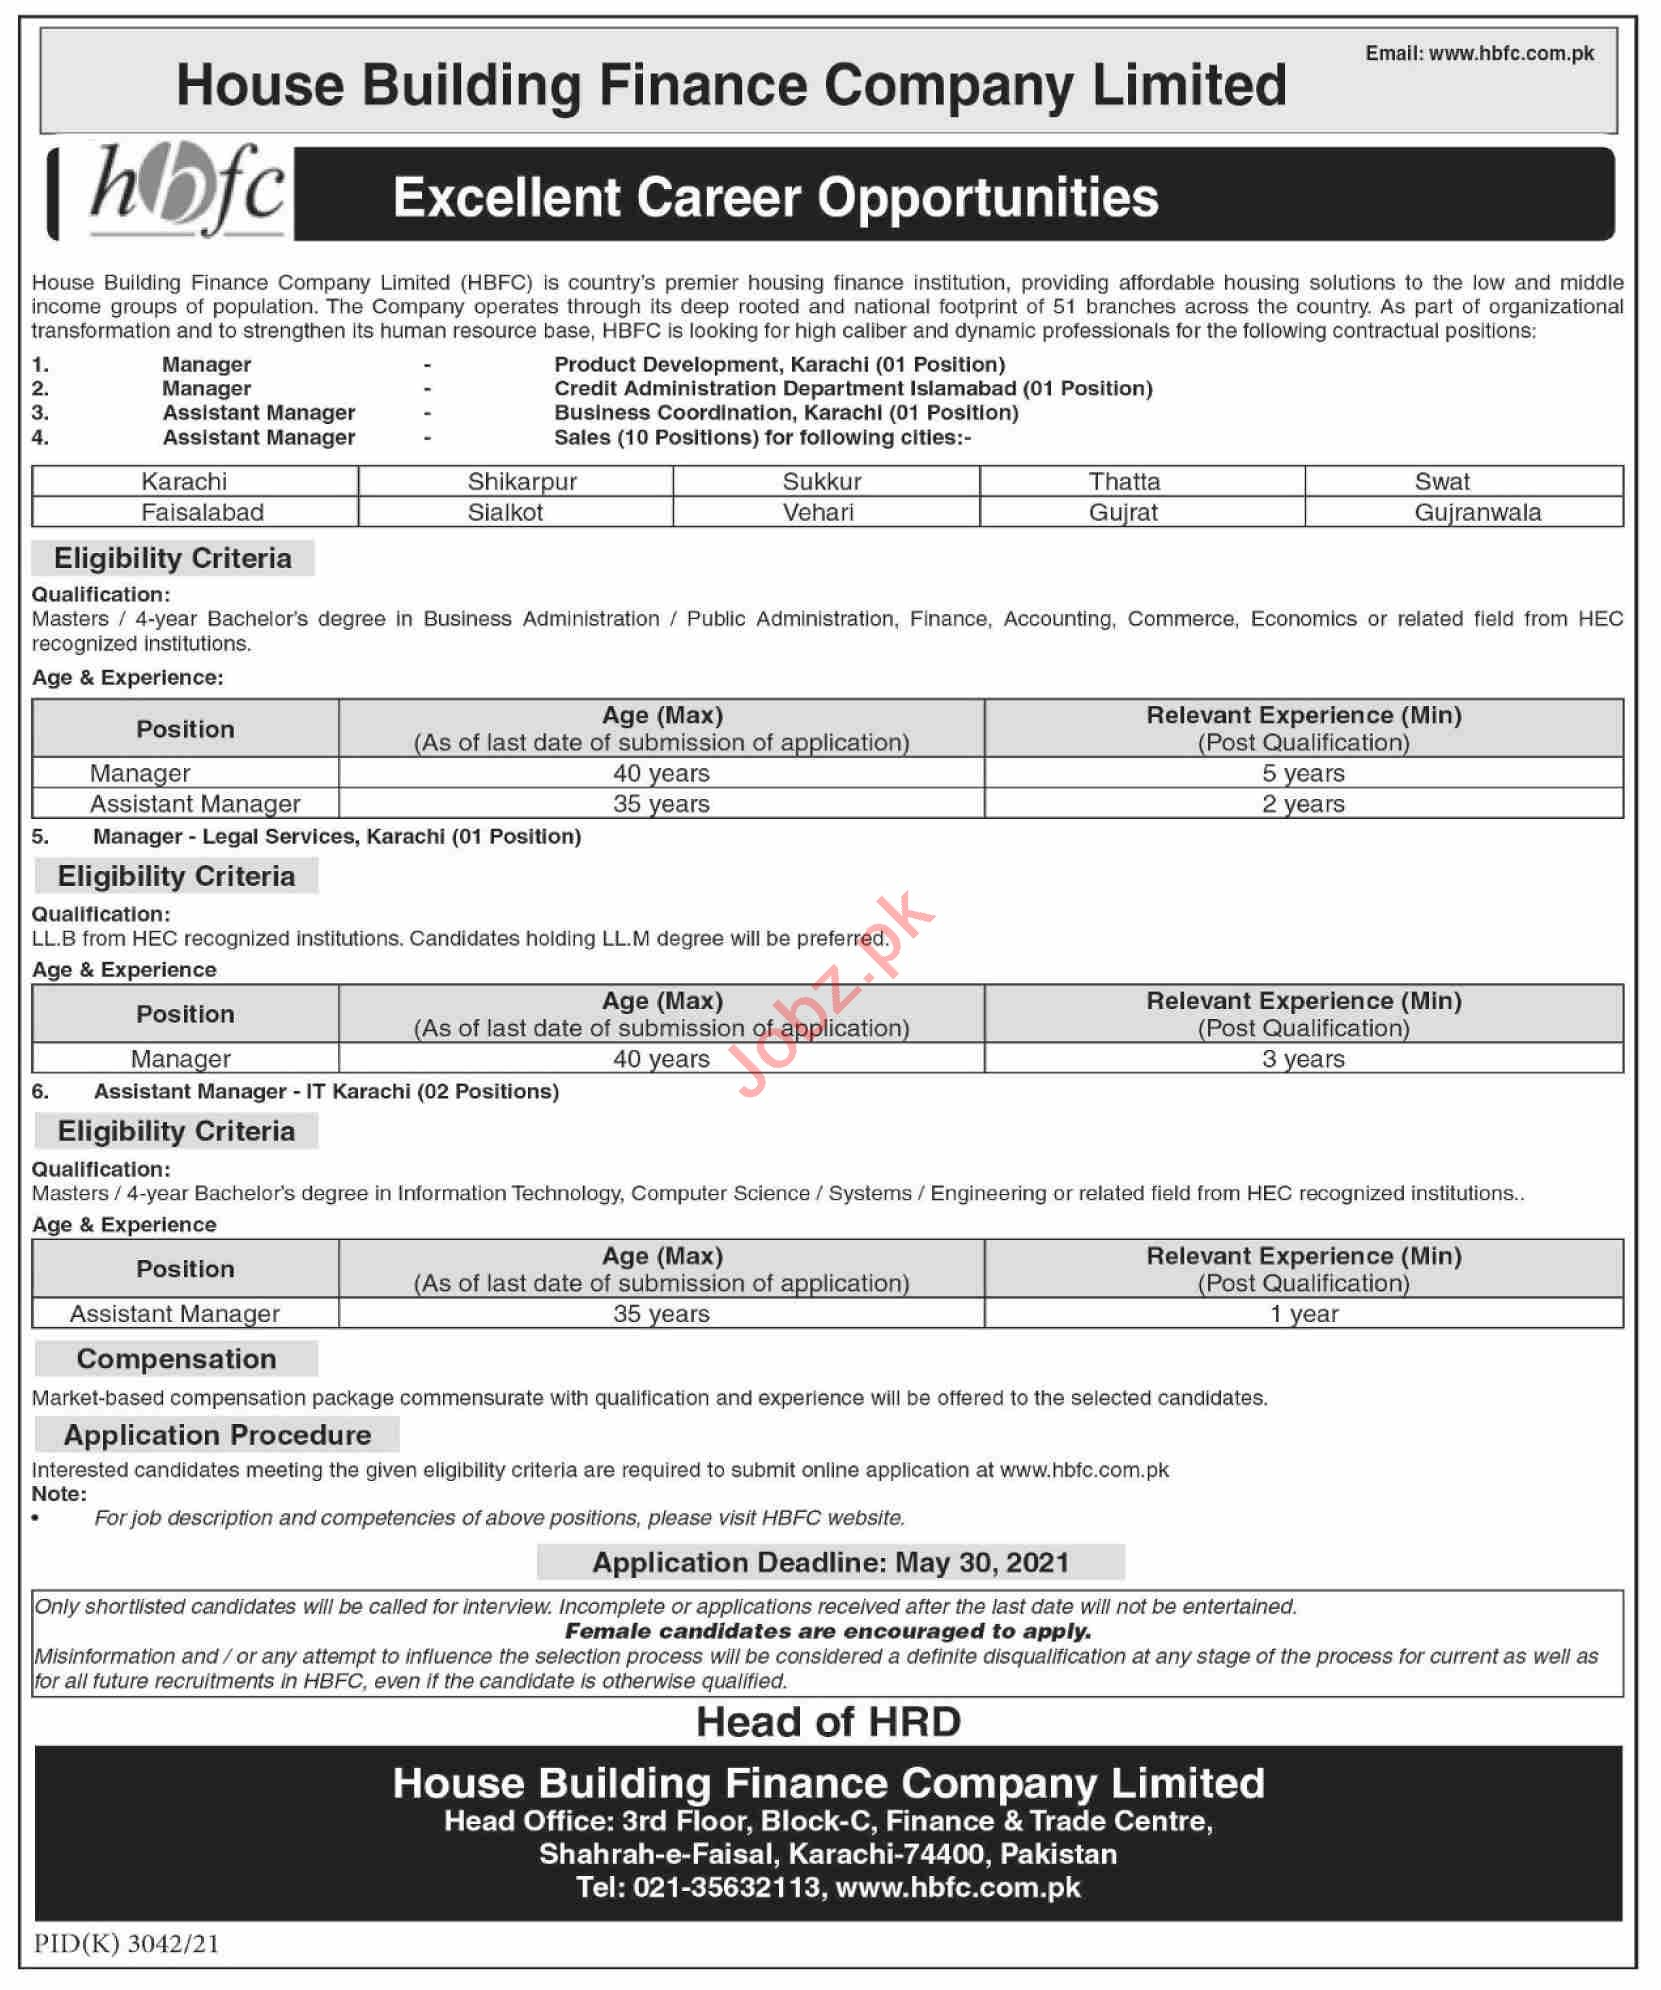 HBFCL Jobs 2021 for Managers & Assistant Managers